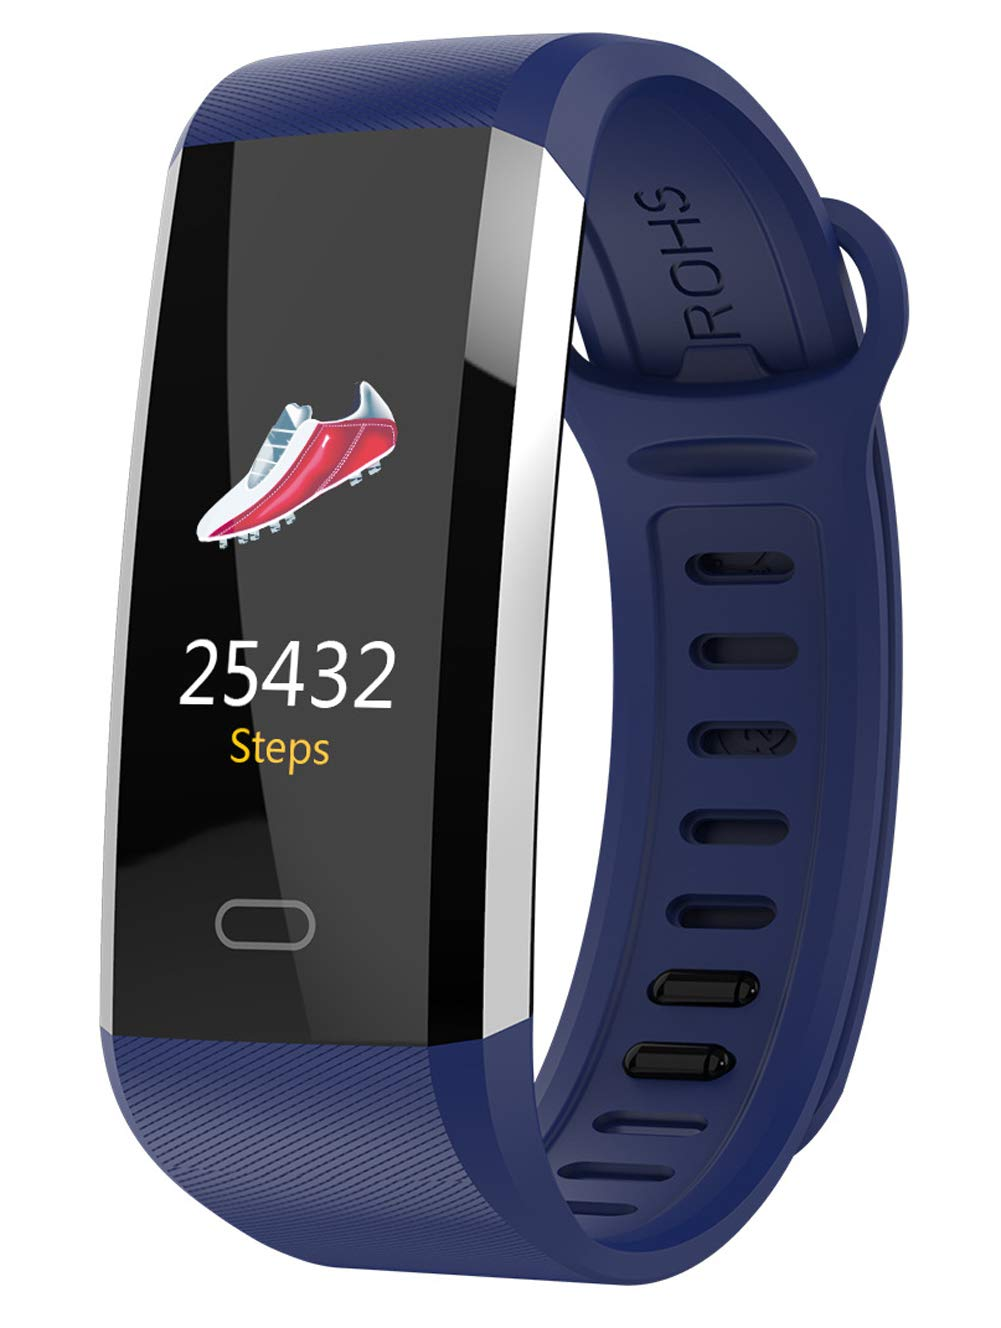 YANGYA Smart Watch, 0.96 Step Calorie Counter Fitness Wristband, Ip67 Waterproof Compatible with Android iOS Phone-Blue by YANGYA